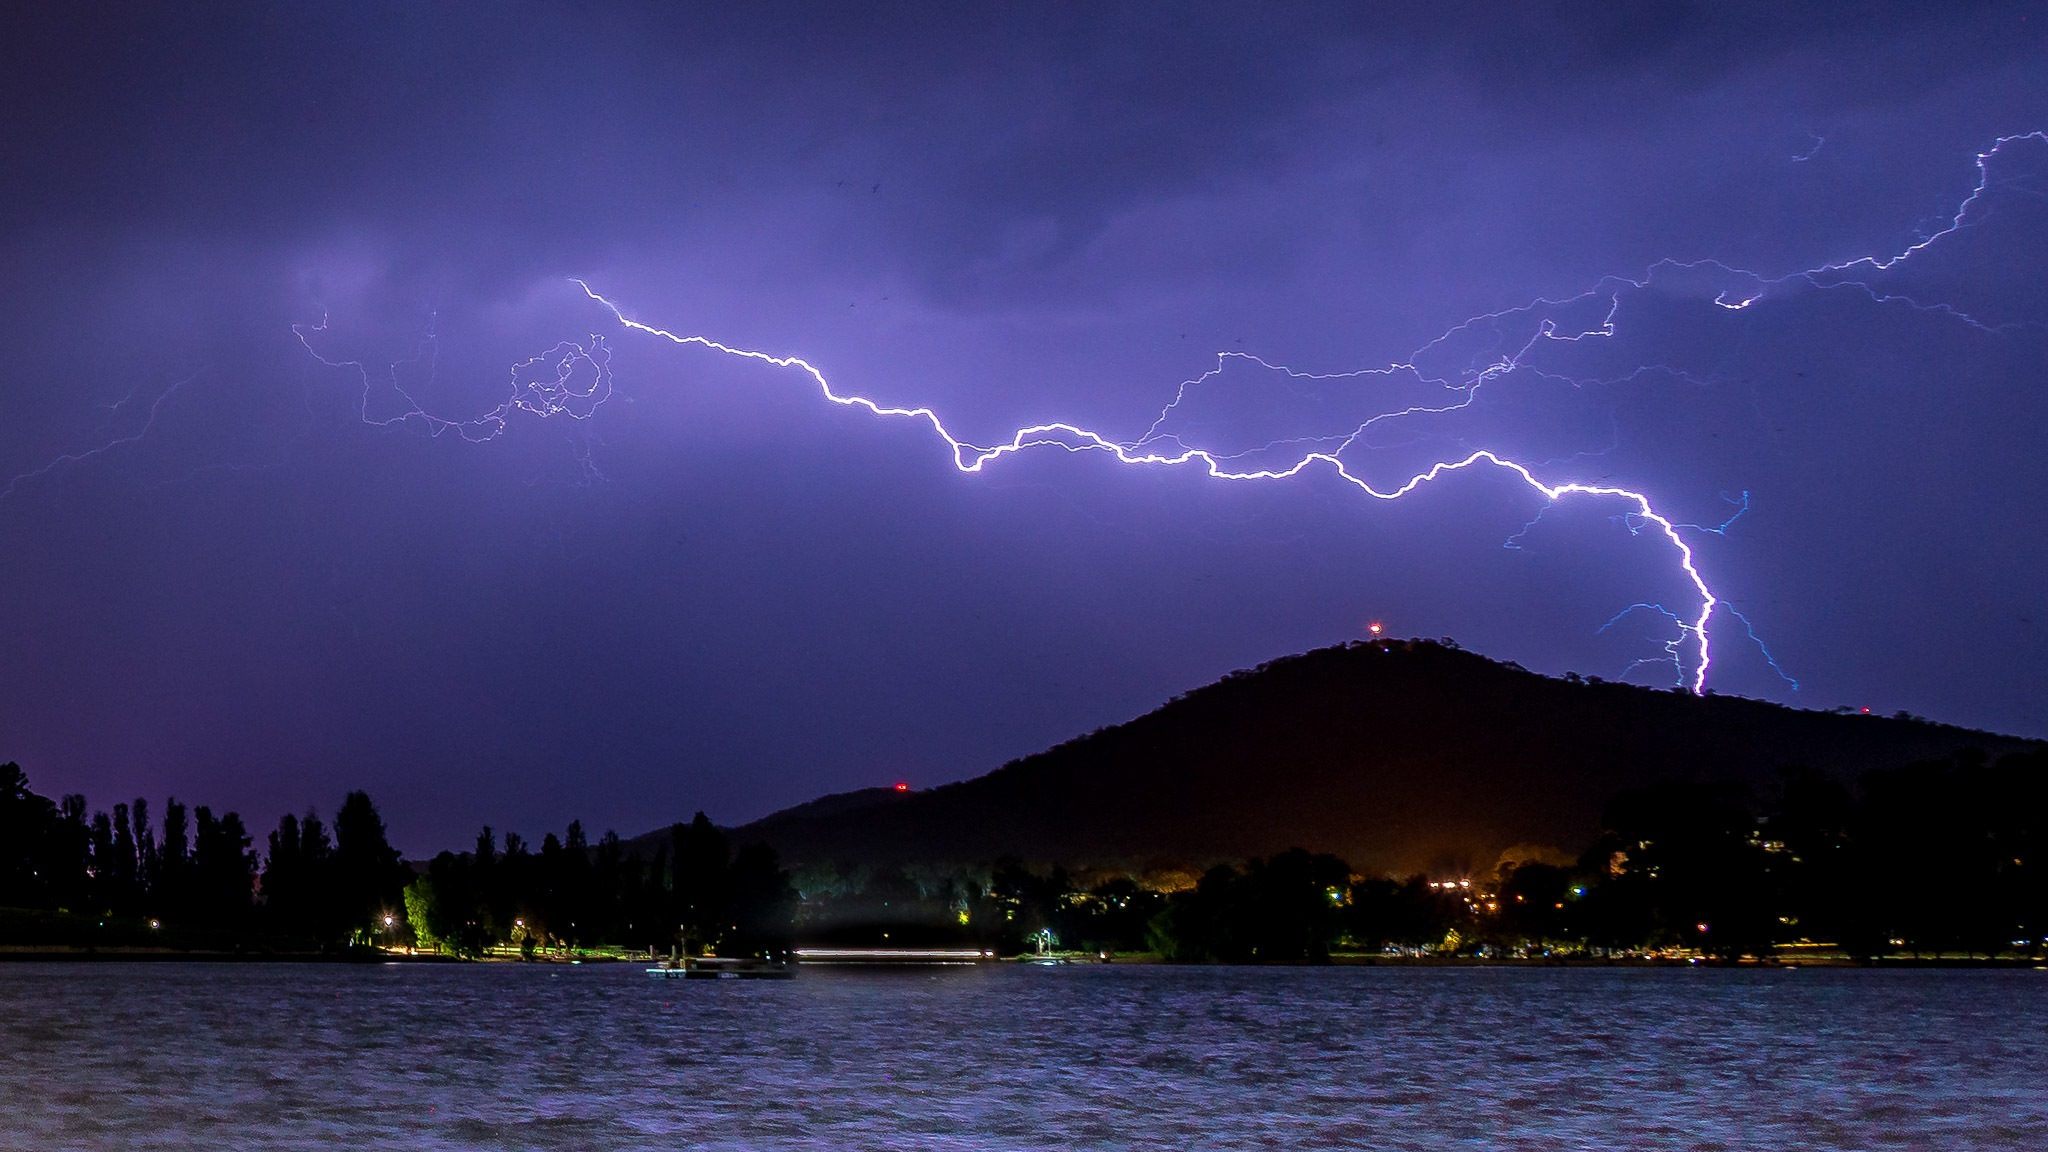 Lightning over lake Burley Griffin by Jimit Patel